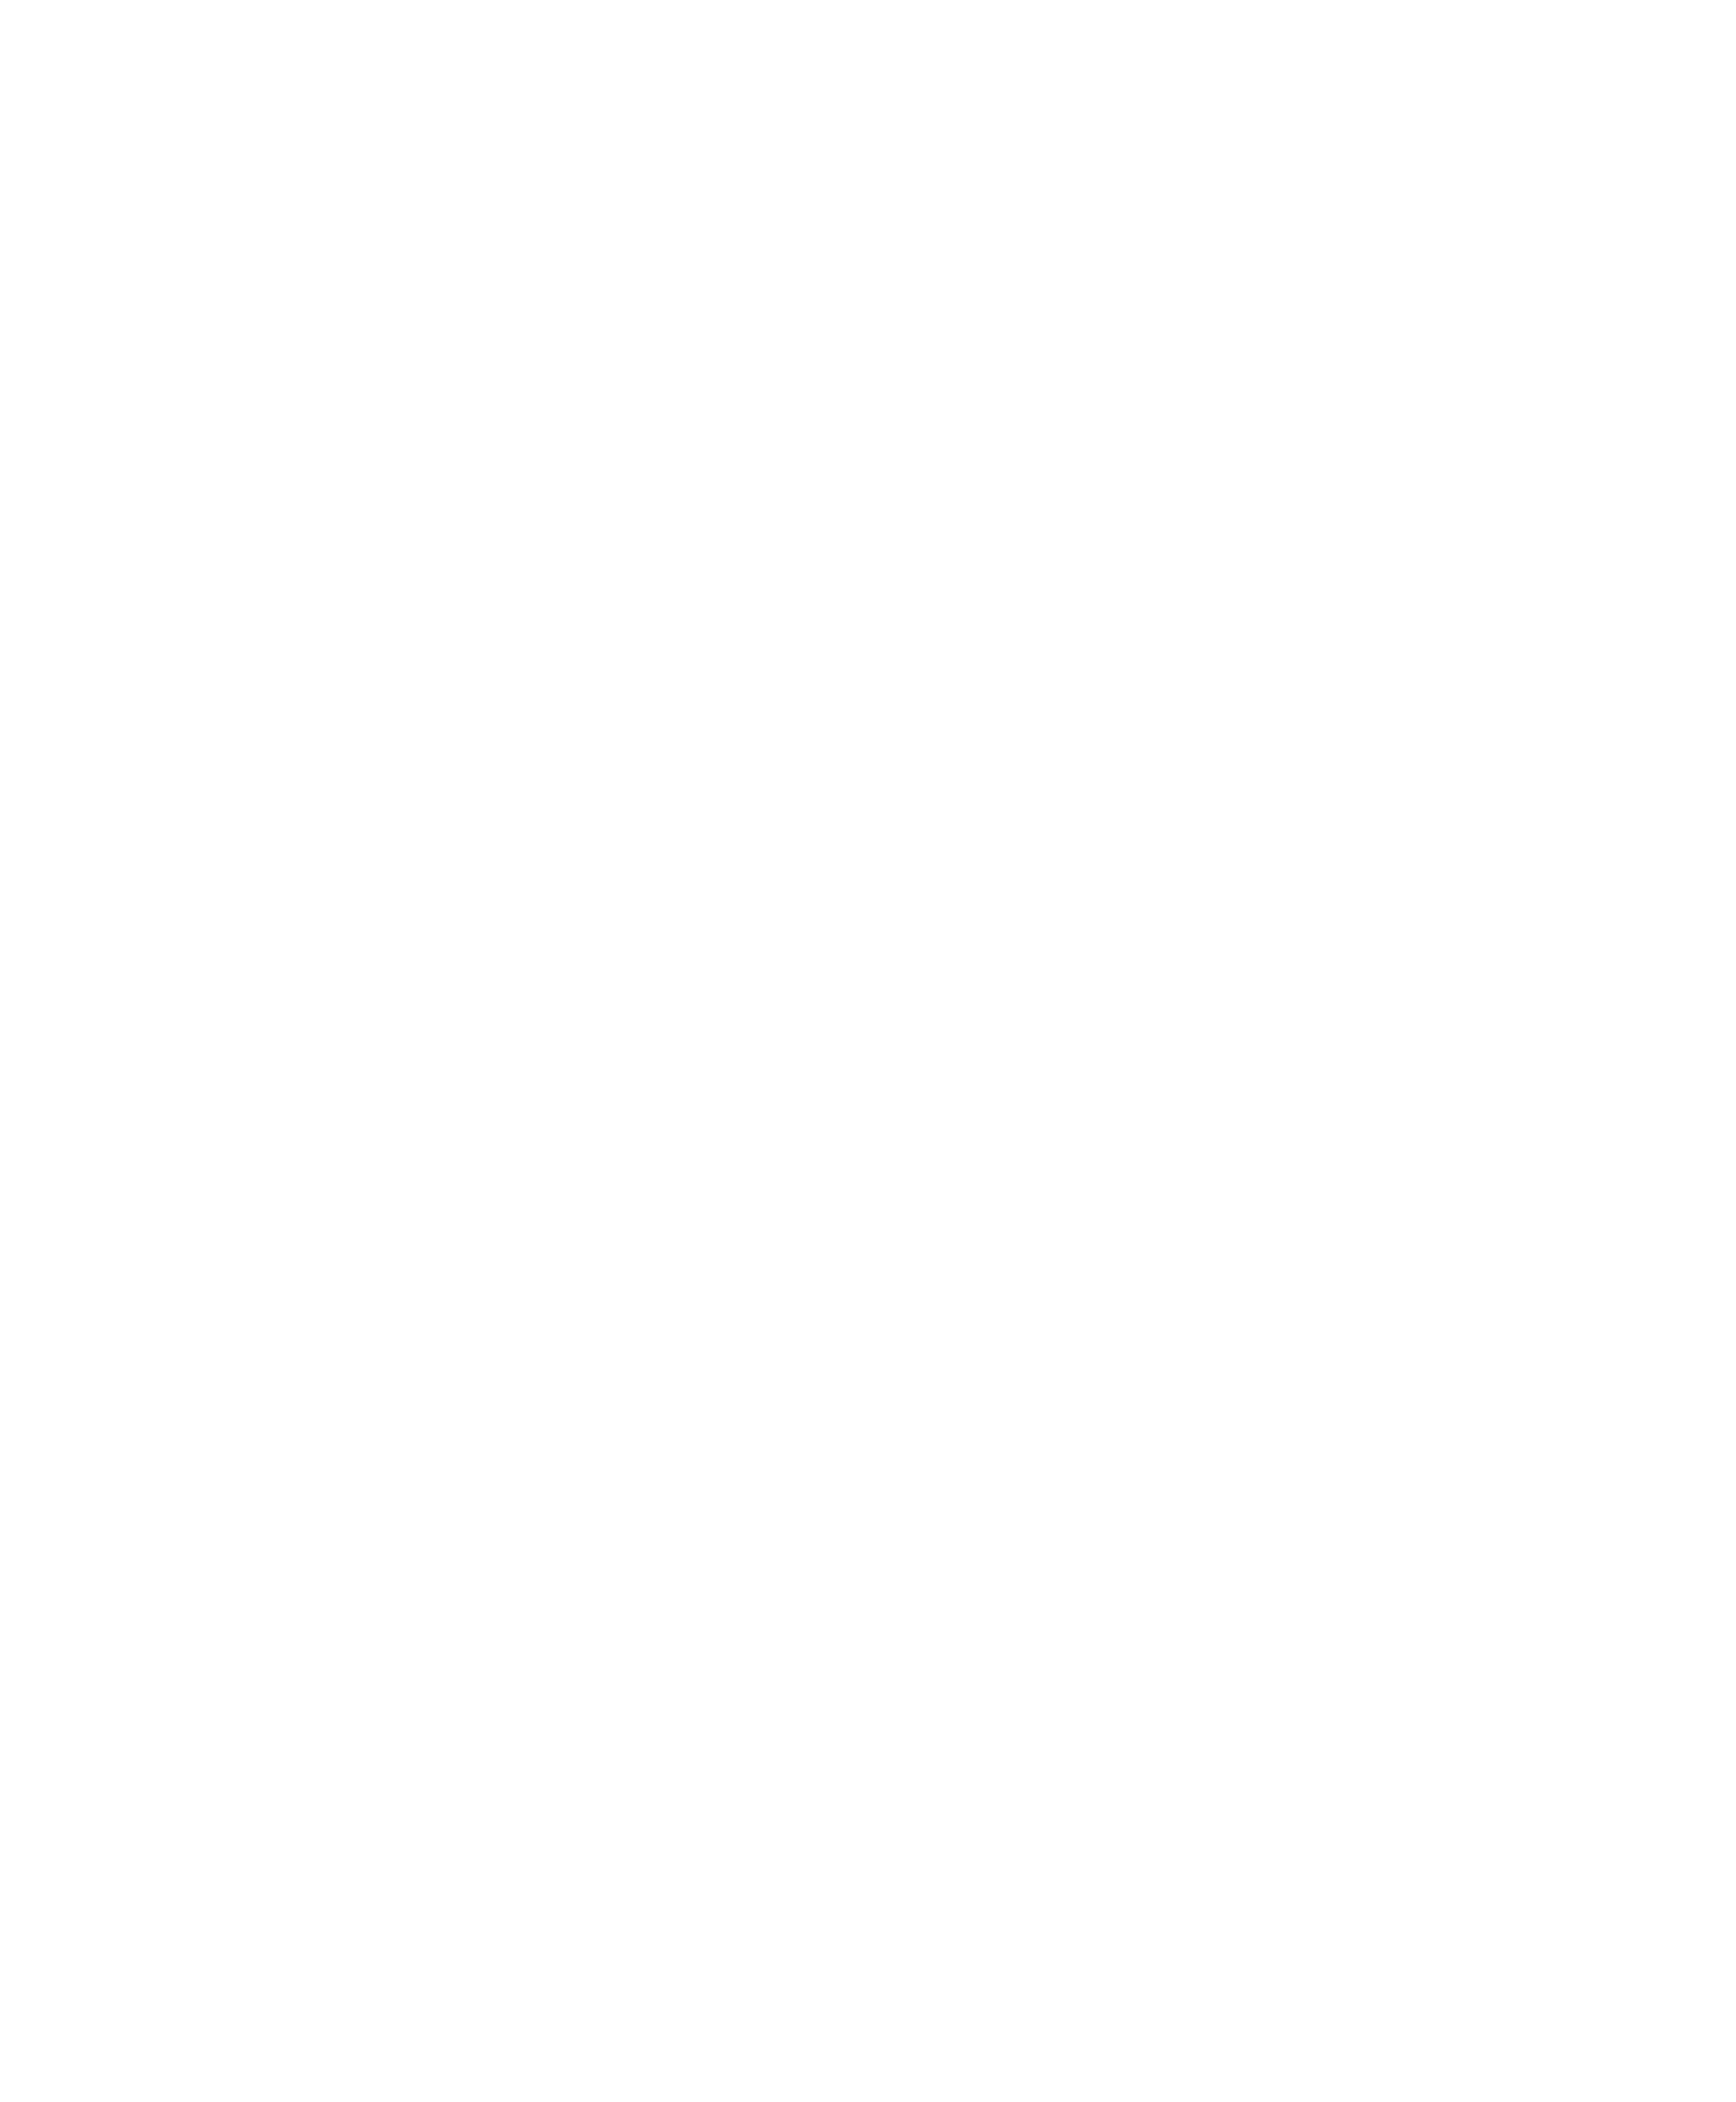 JUJU CONSULTING GROUP